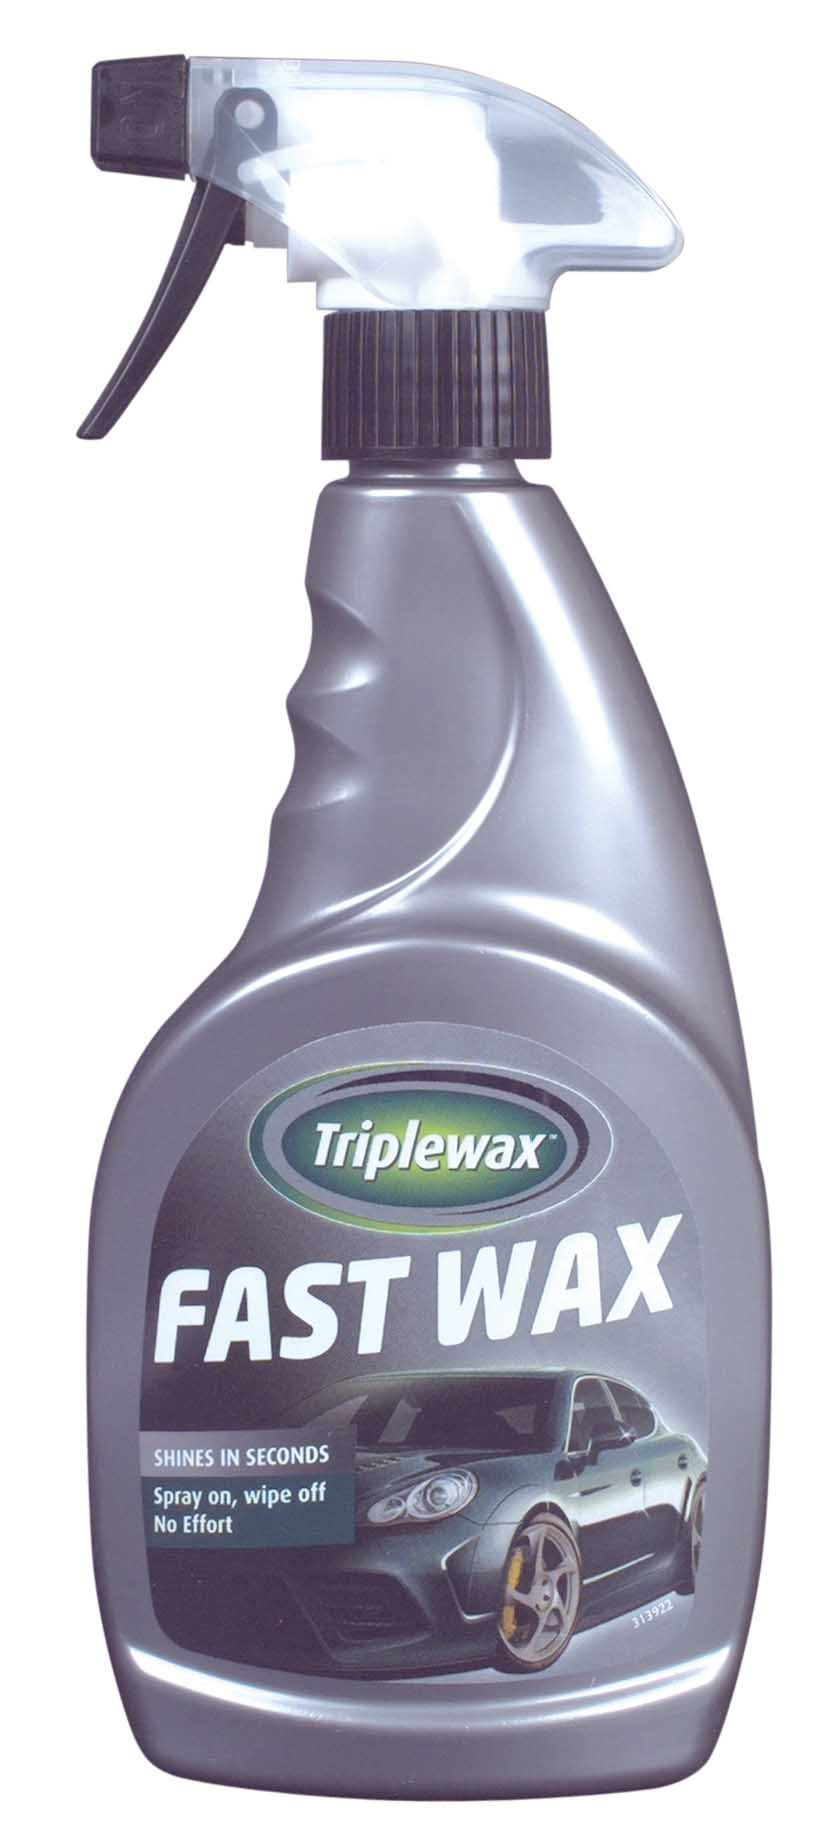 triplewax fabric cleaner seats carpets roof cleaner odour remove 500ml tfc500 ebay. Black Bedroom Furniture Sets. Home Design Ideas